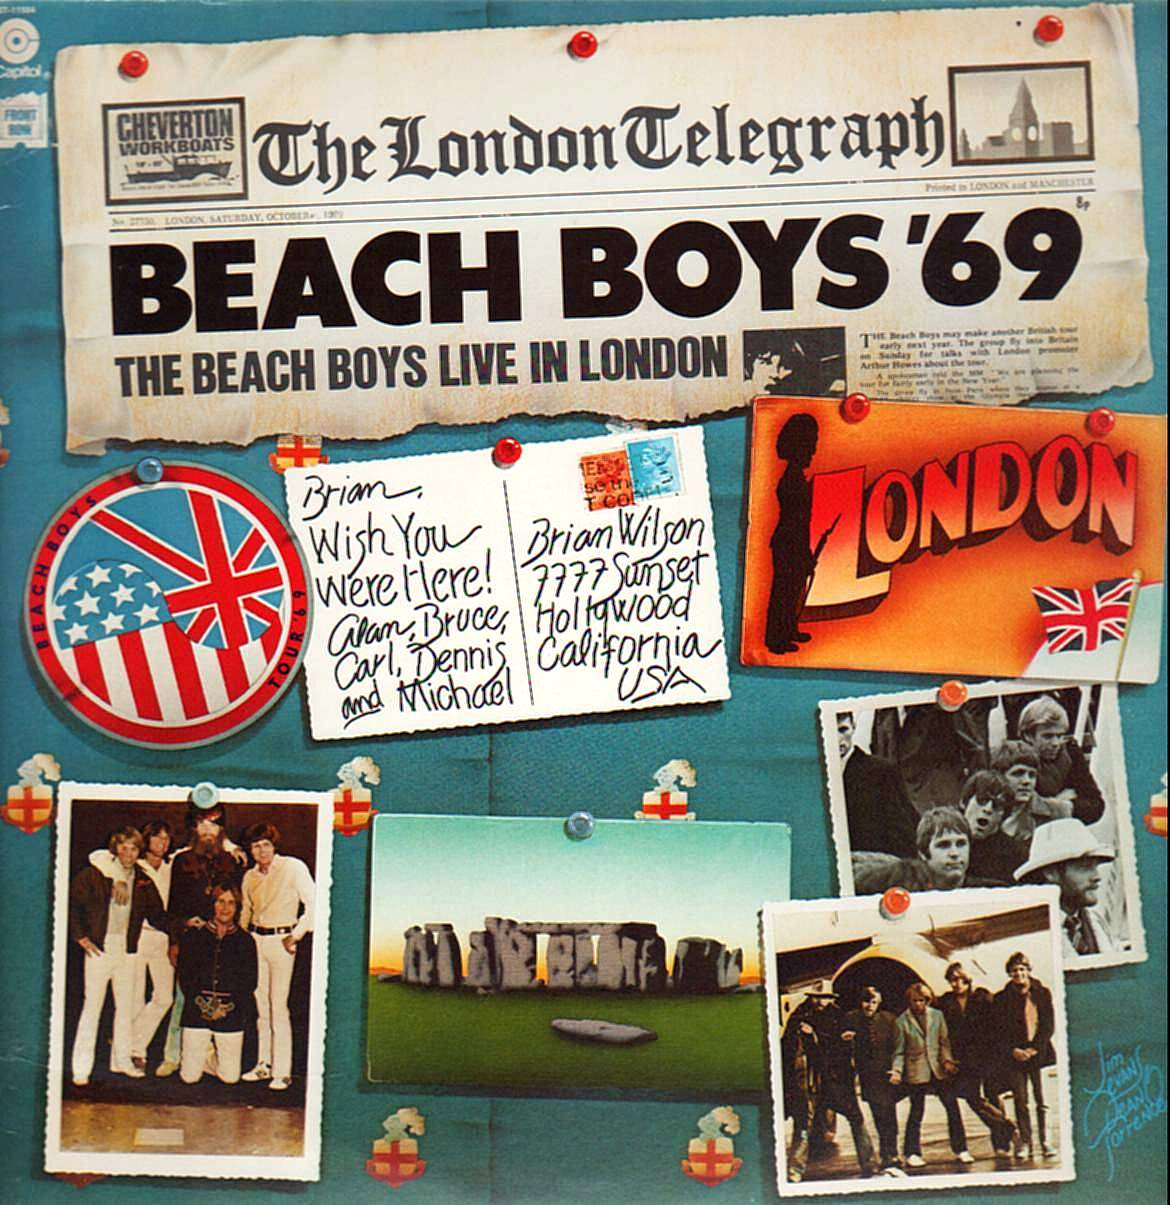 Beach Boys '69 cover